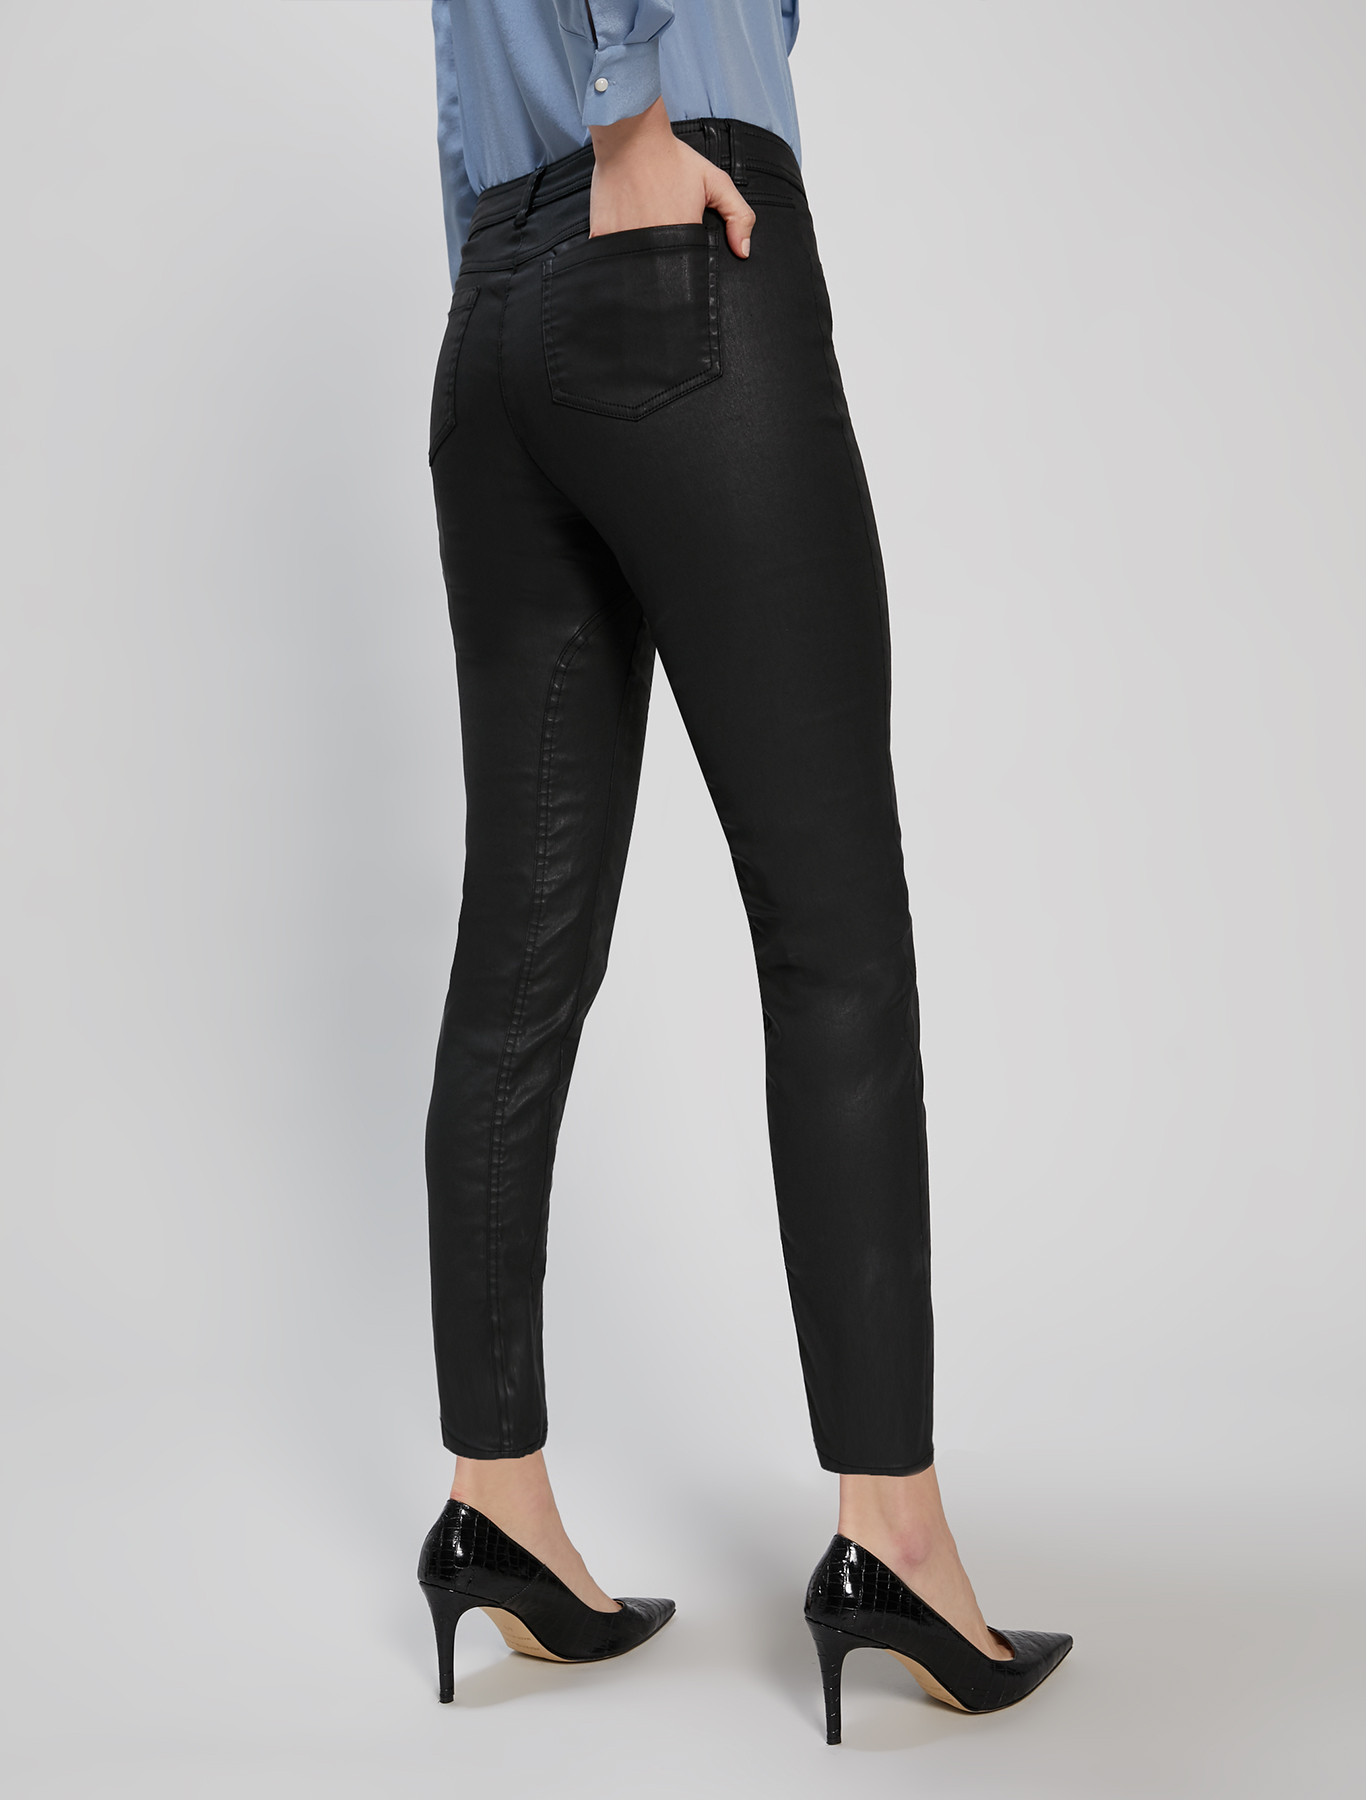 Cotton satin trousers - black - pennyblack